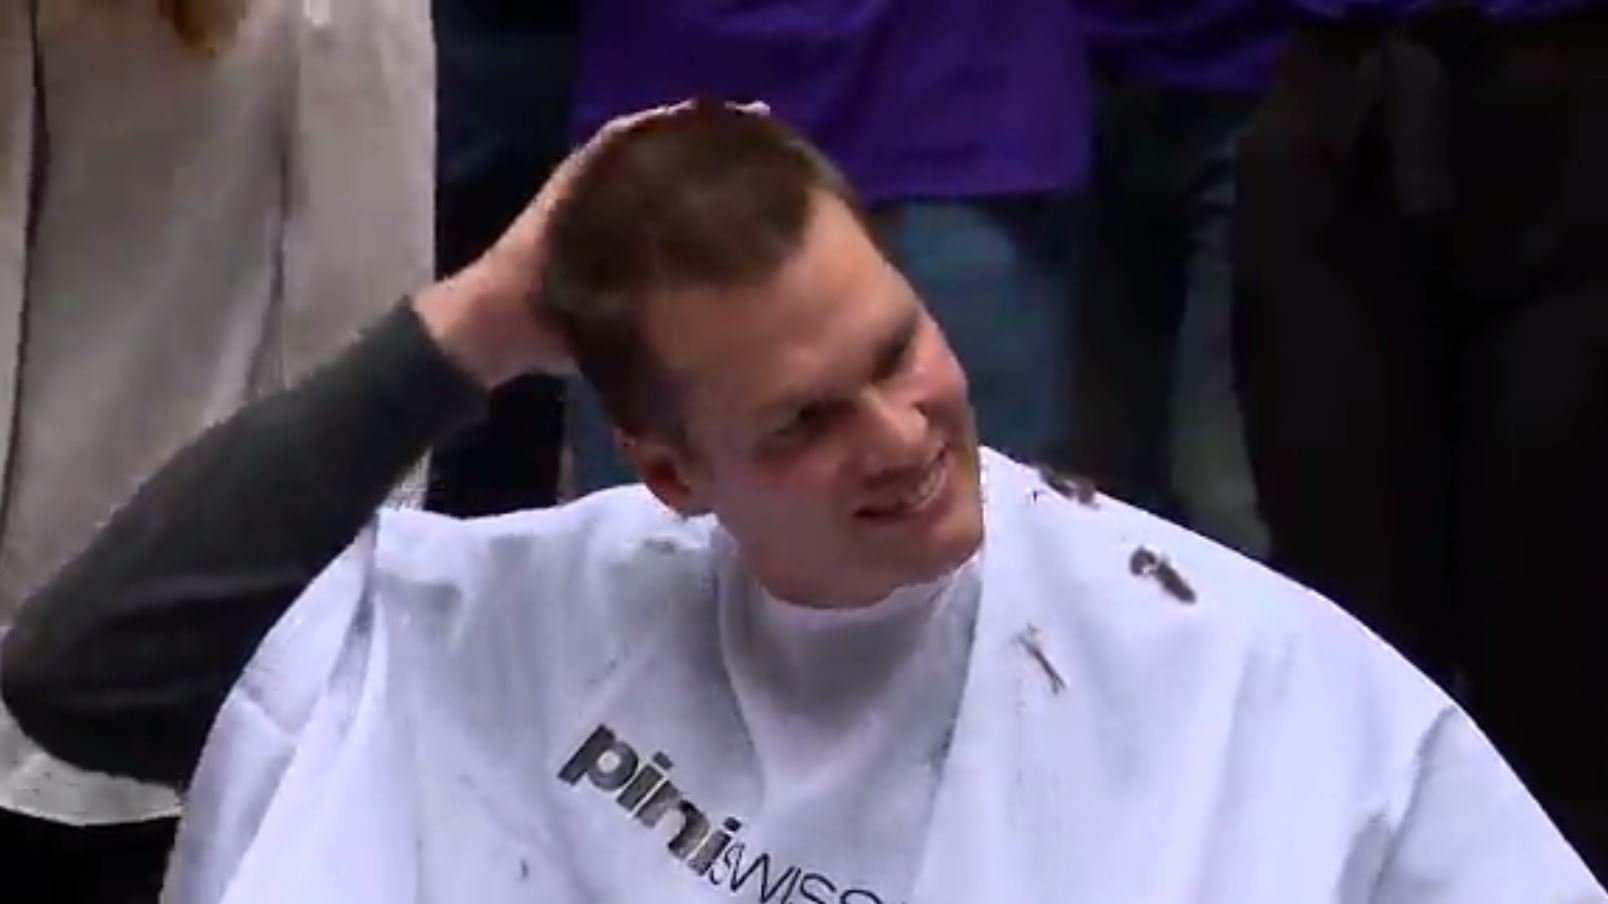 Quarterback Tom Brady got a buzz cut at the Granite Telecommunications building in Quincy, MA, on Thursday to raise money for the Dana-Farber Cancer Institute. (Source: WCVB/CNN)